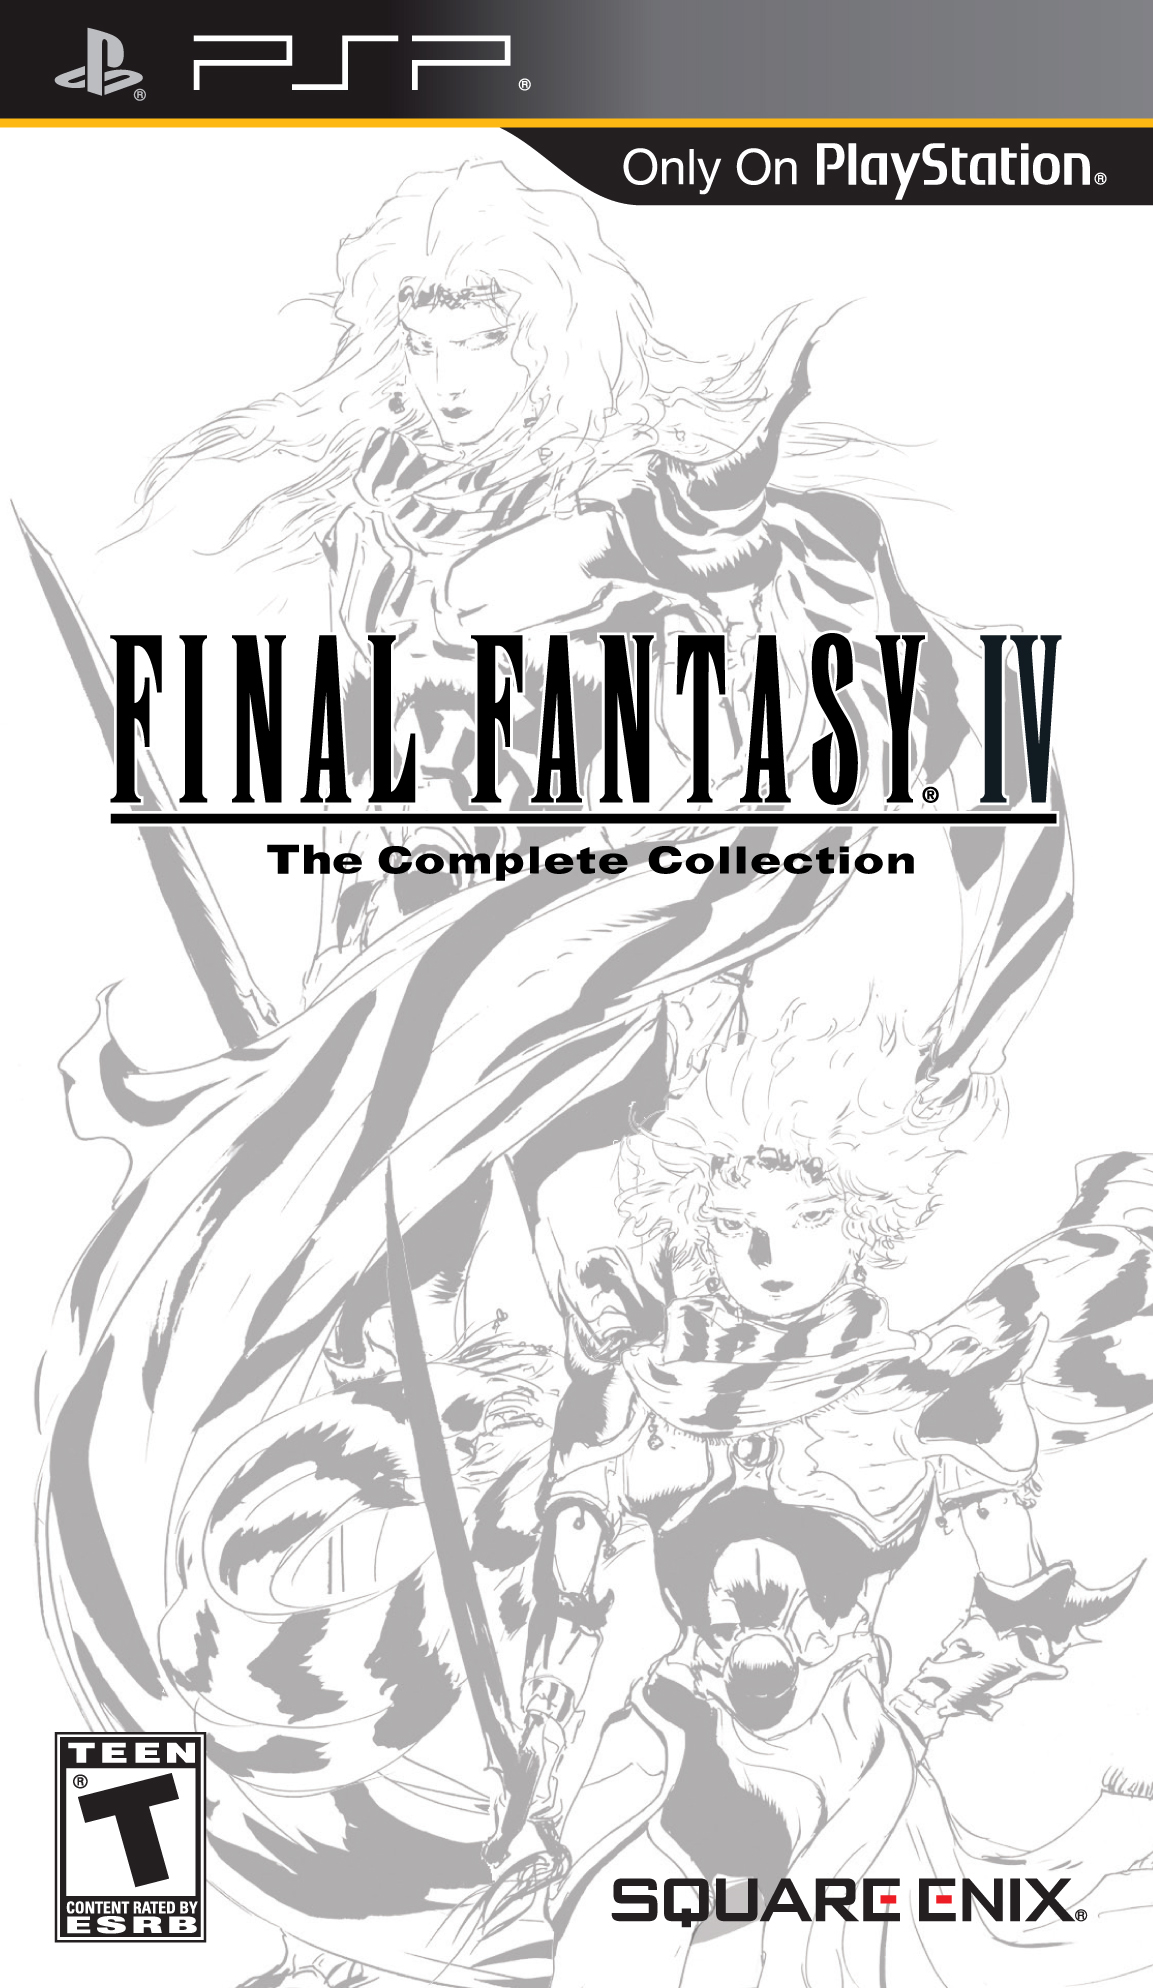 Final Fantasy IV - The Complete Collection - Playstation Portable